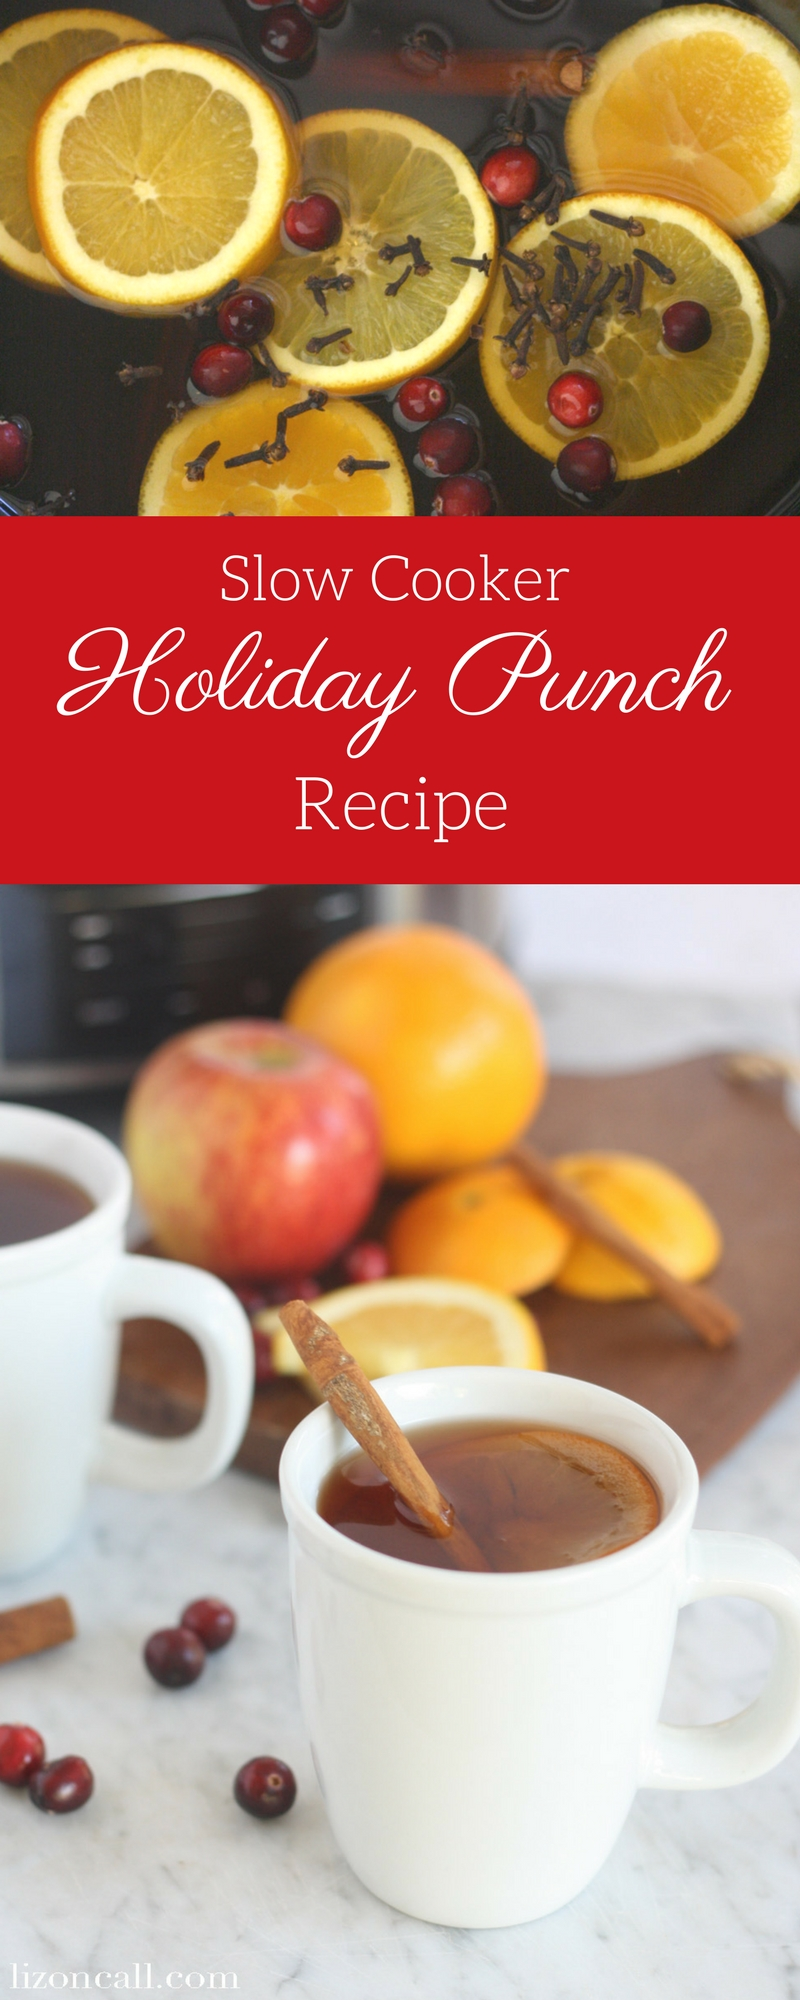 collage image of slow cooker party punch